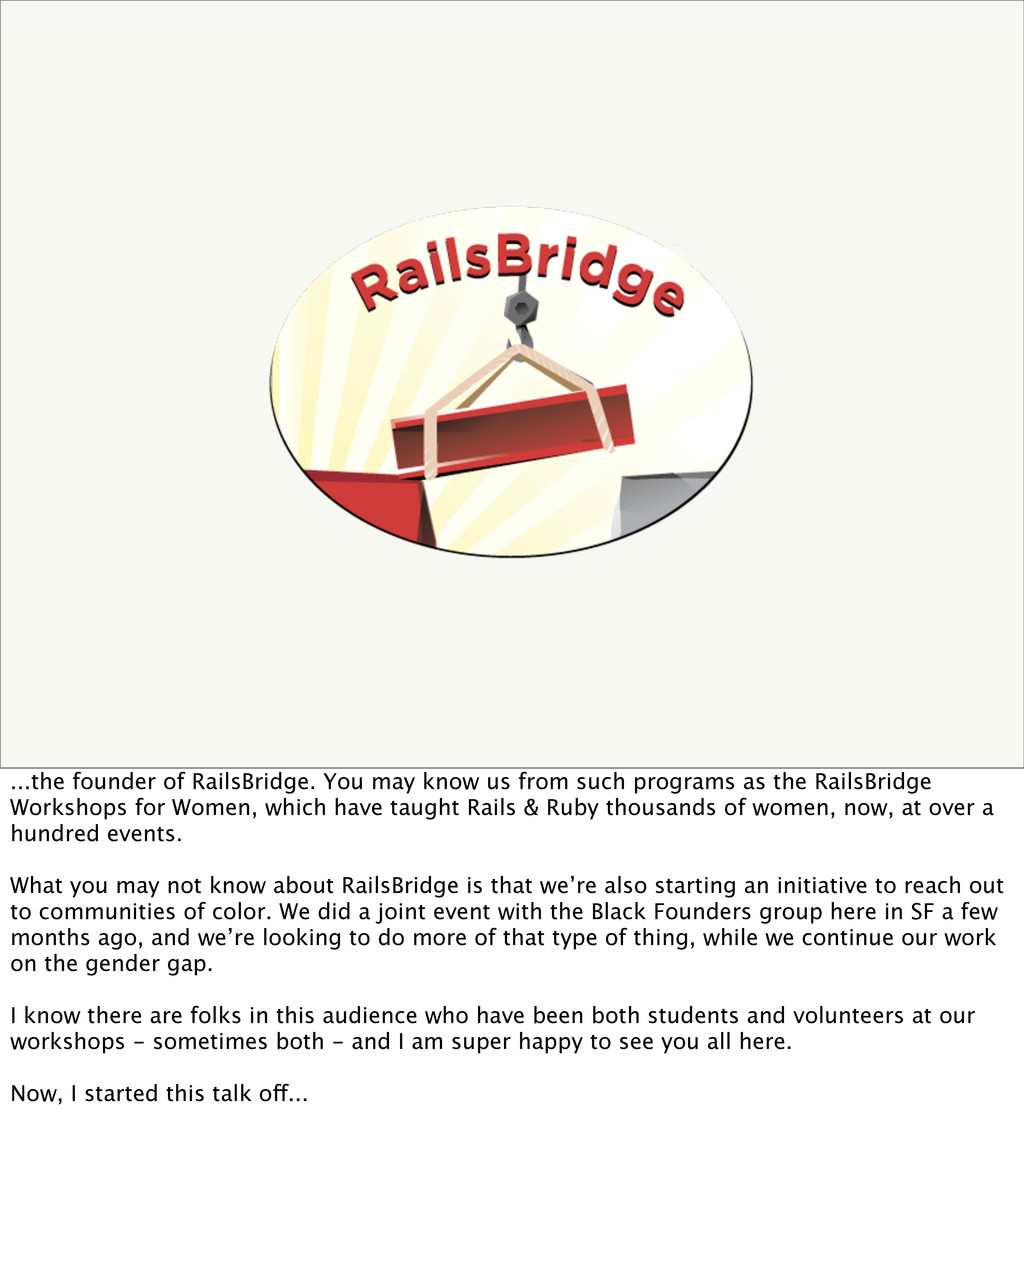 ...the founder of RailsBridge. You may know us ...